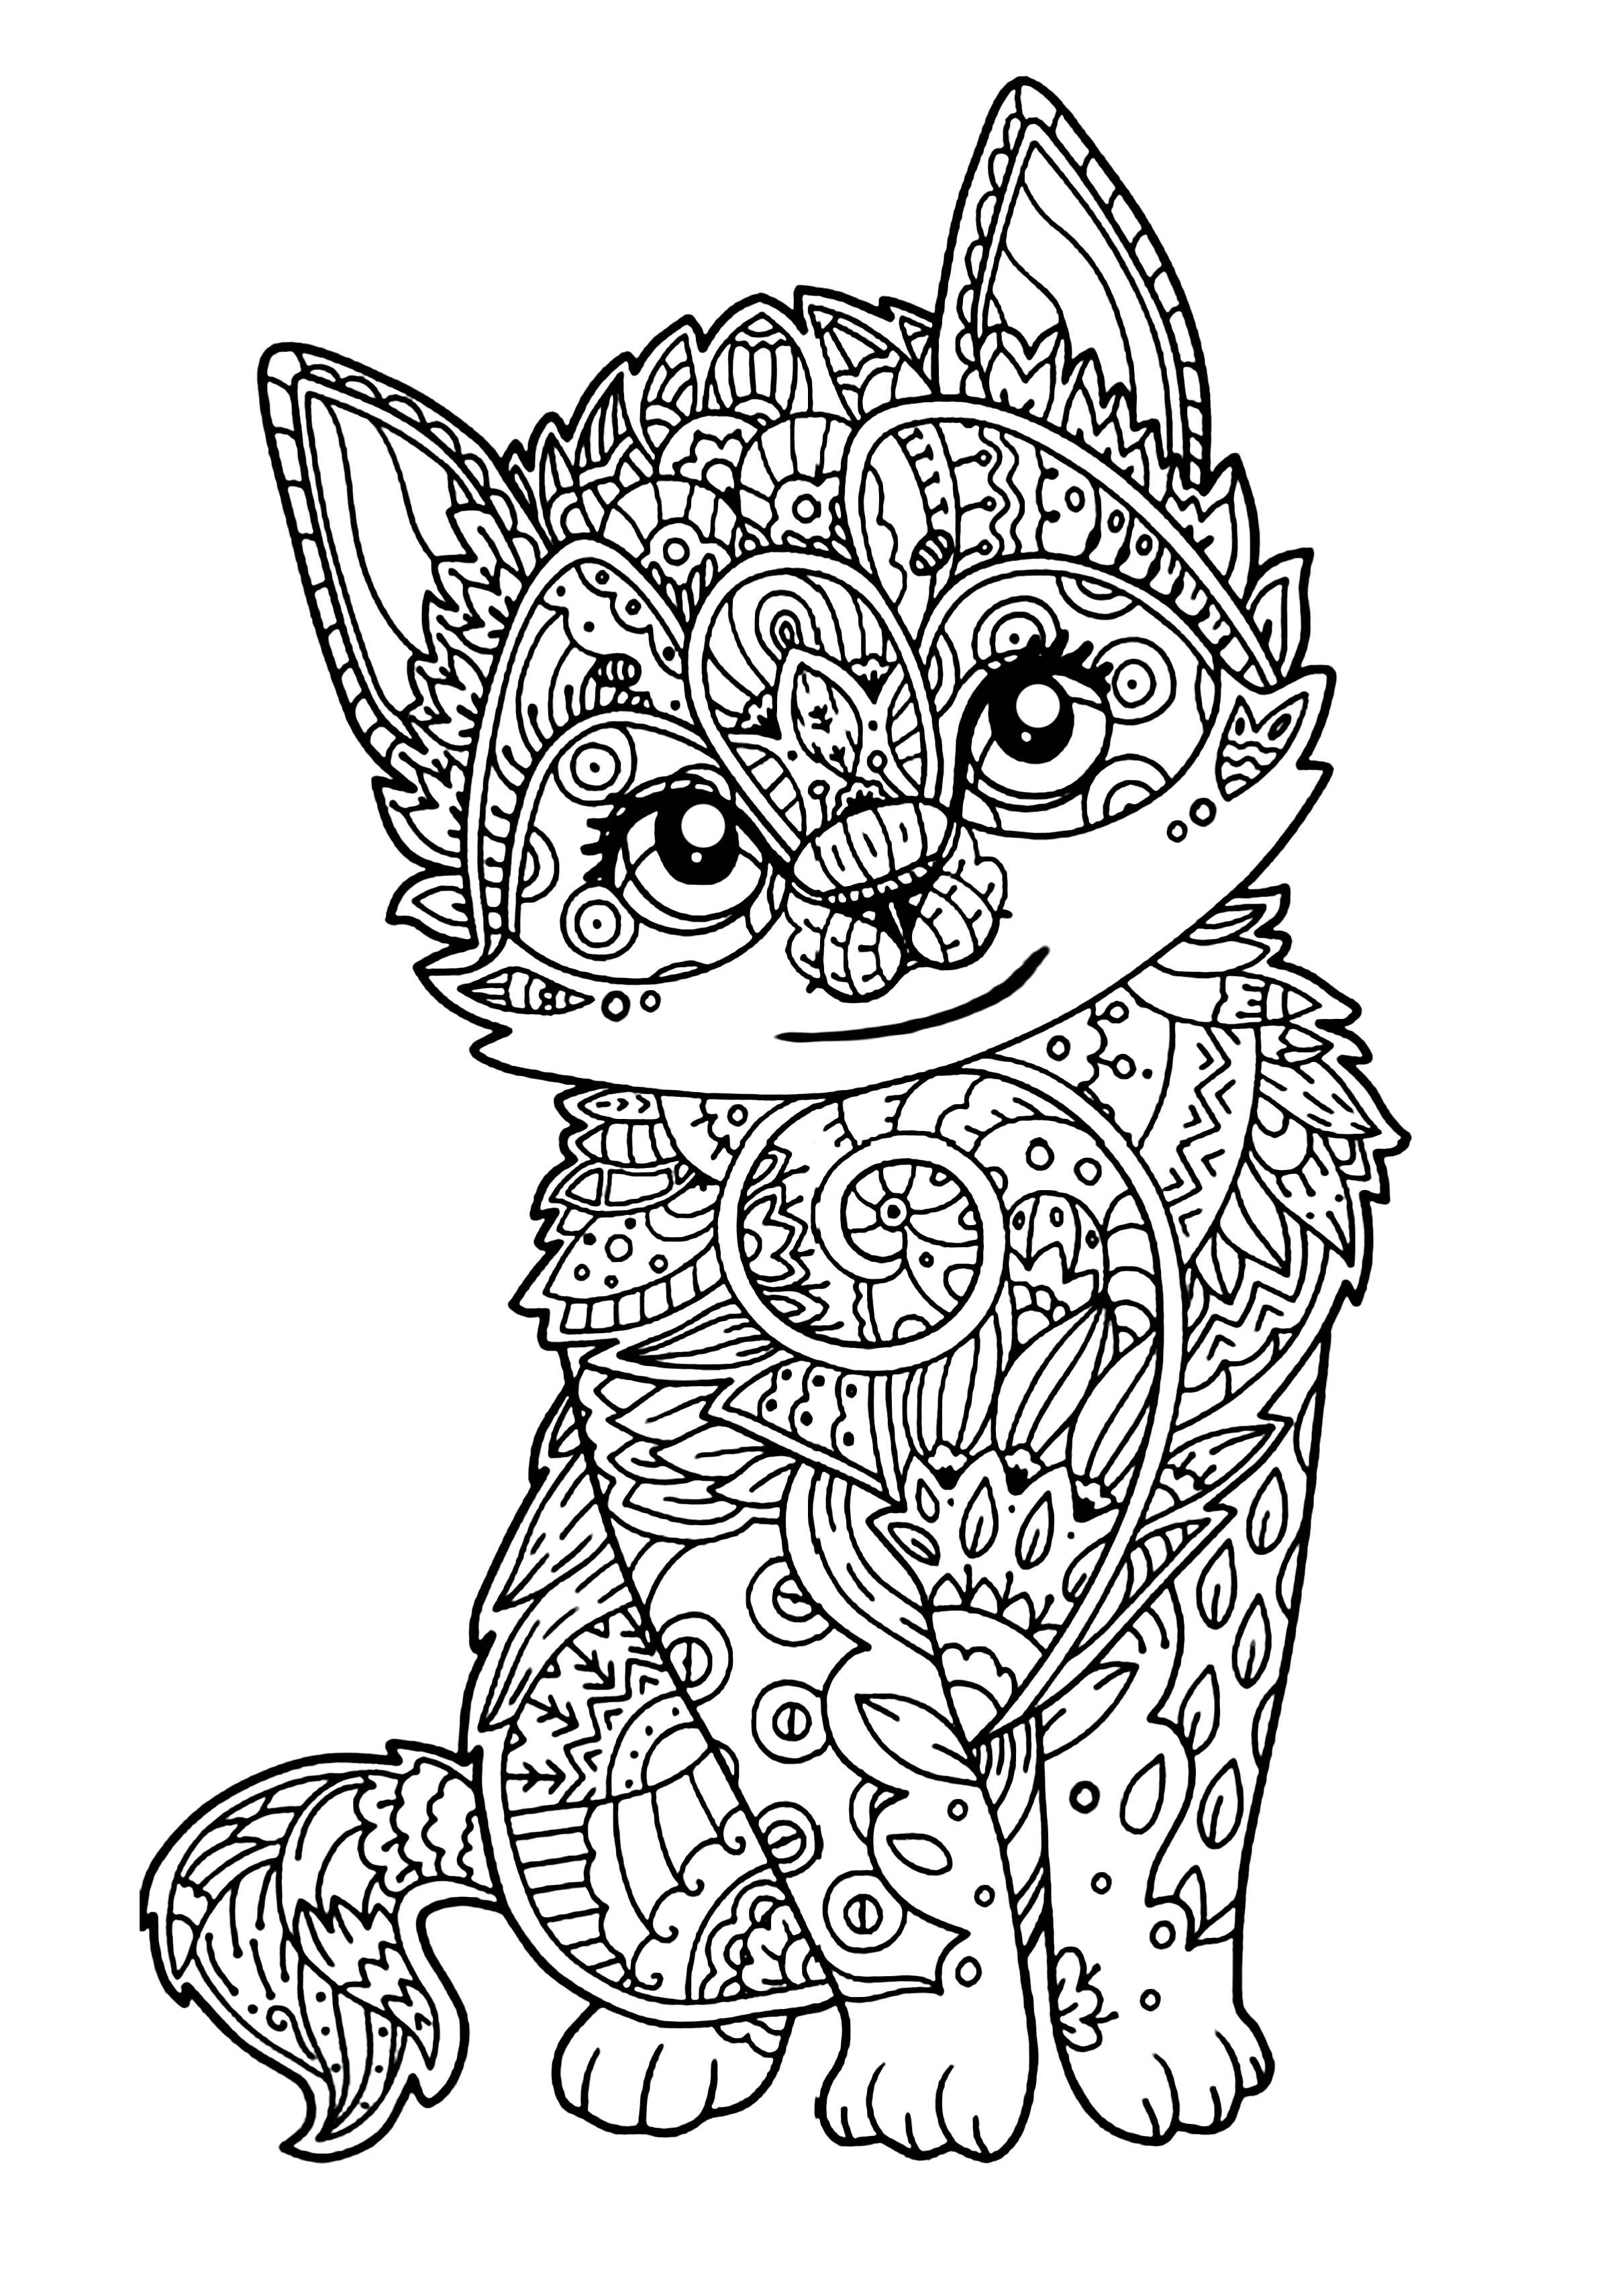 HIDDEN Animals Coloring Pages for Adults Just Color